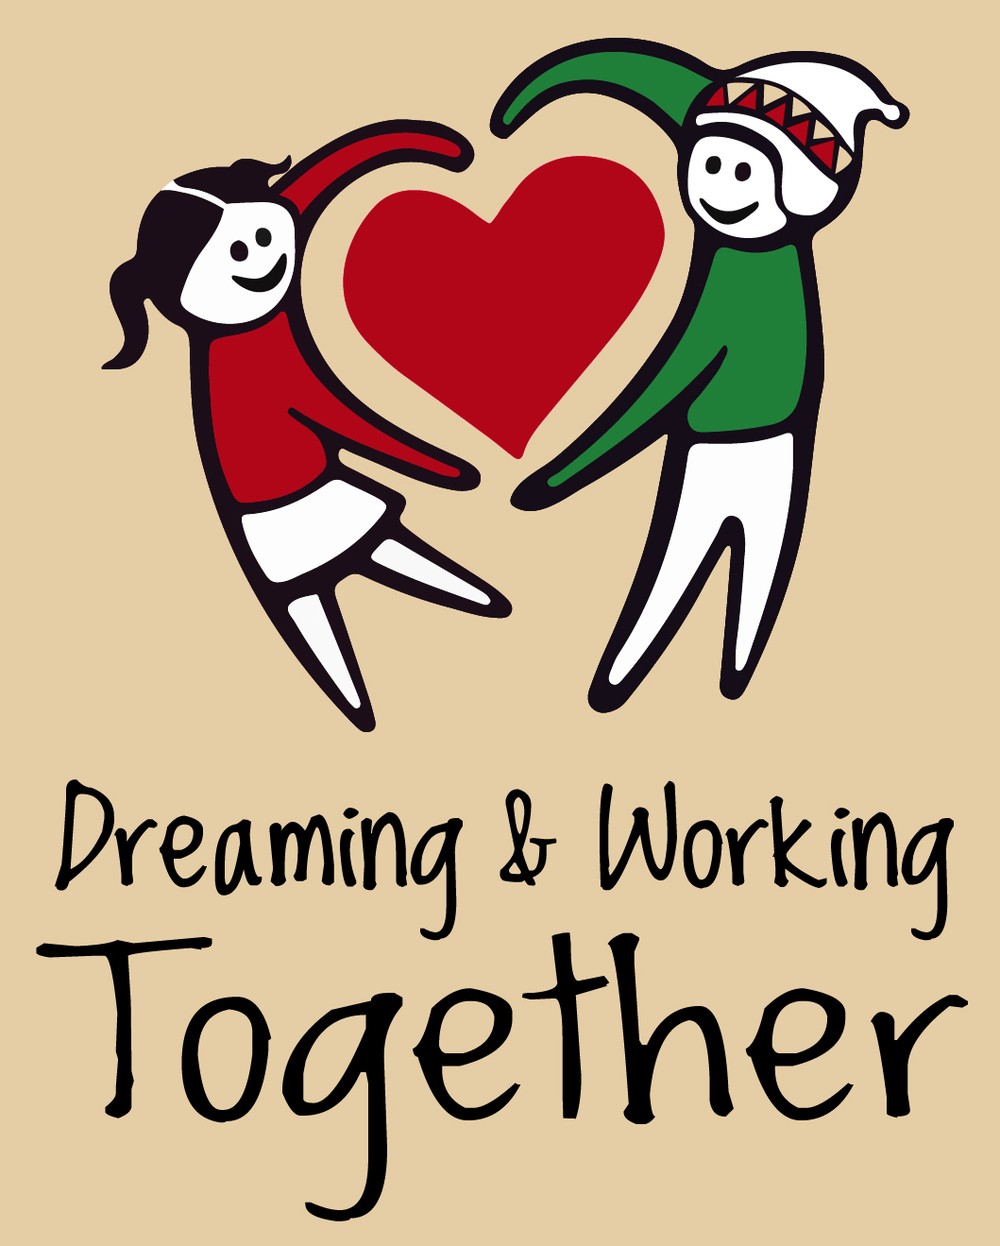 Logo dreaming & working together-01.jpg